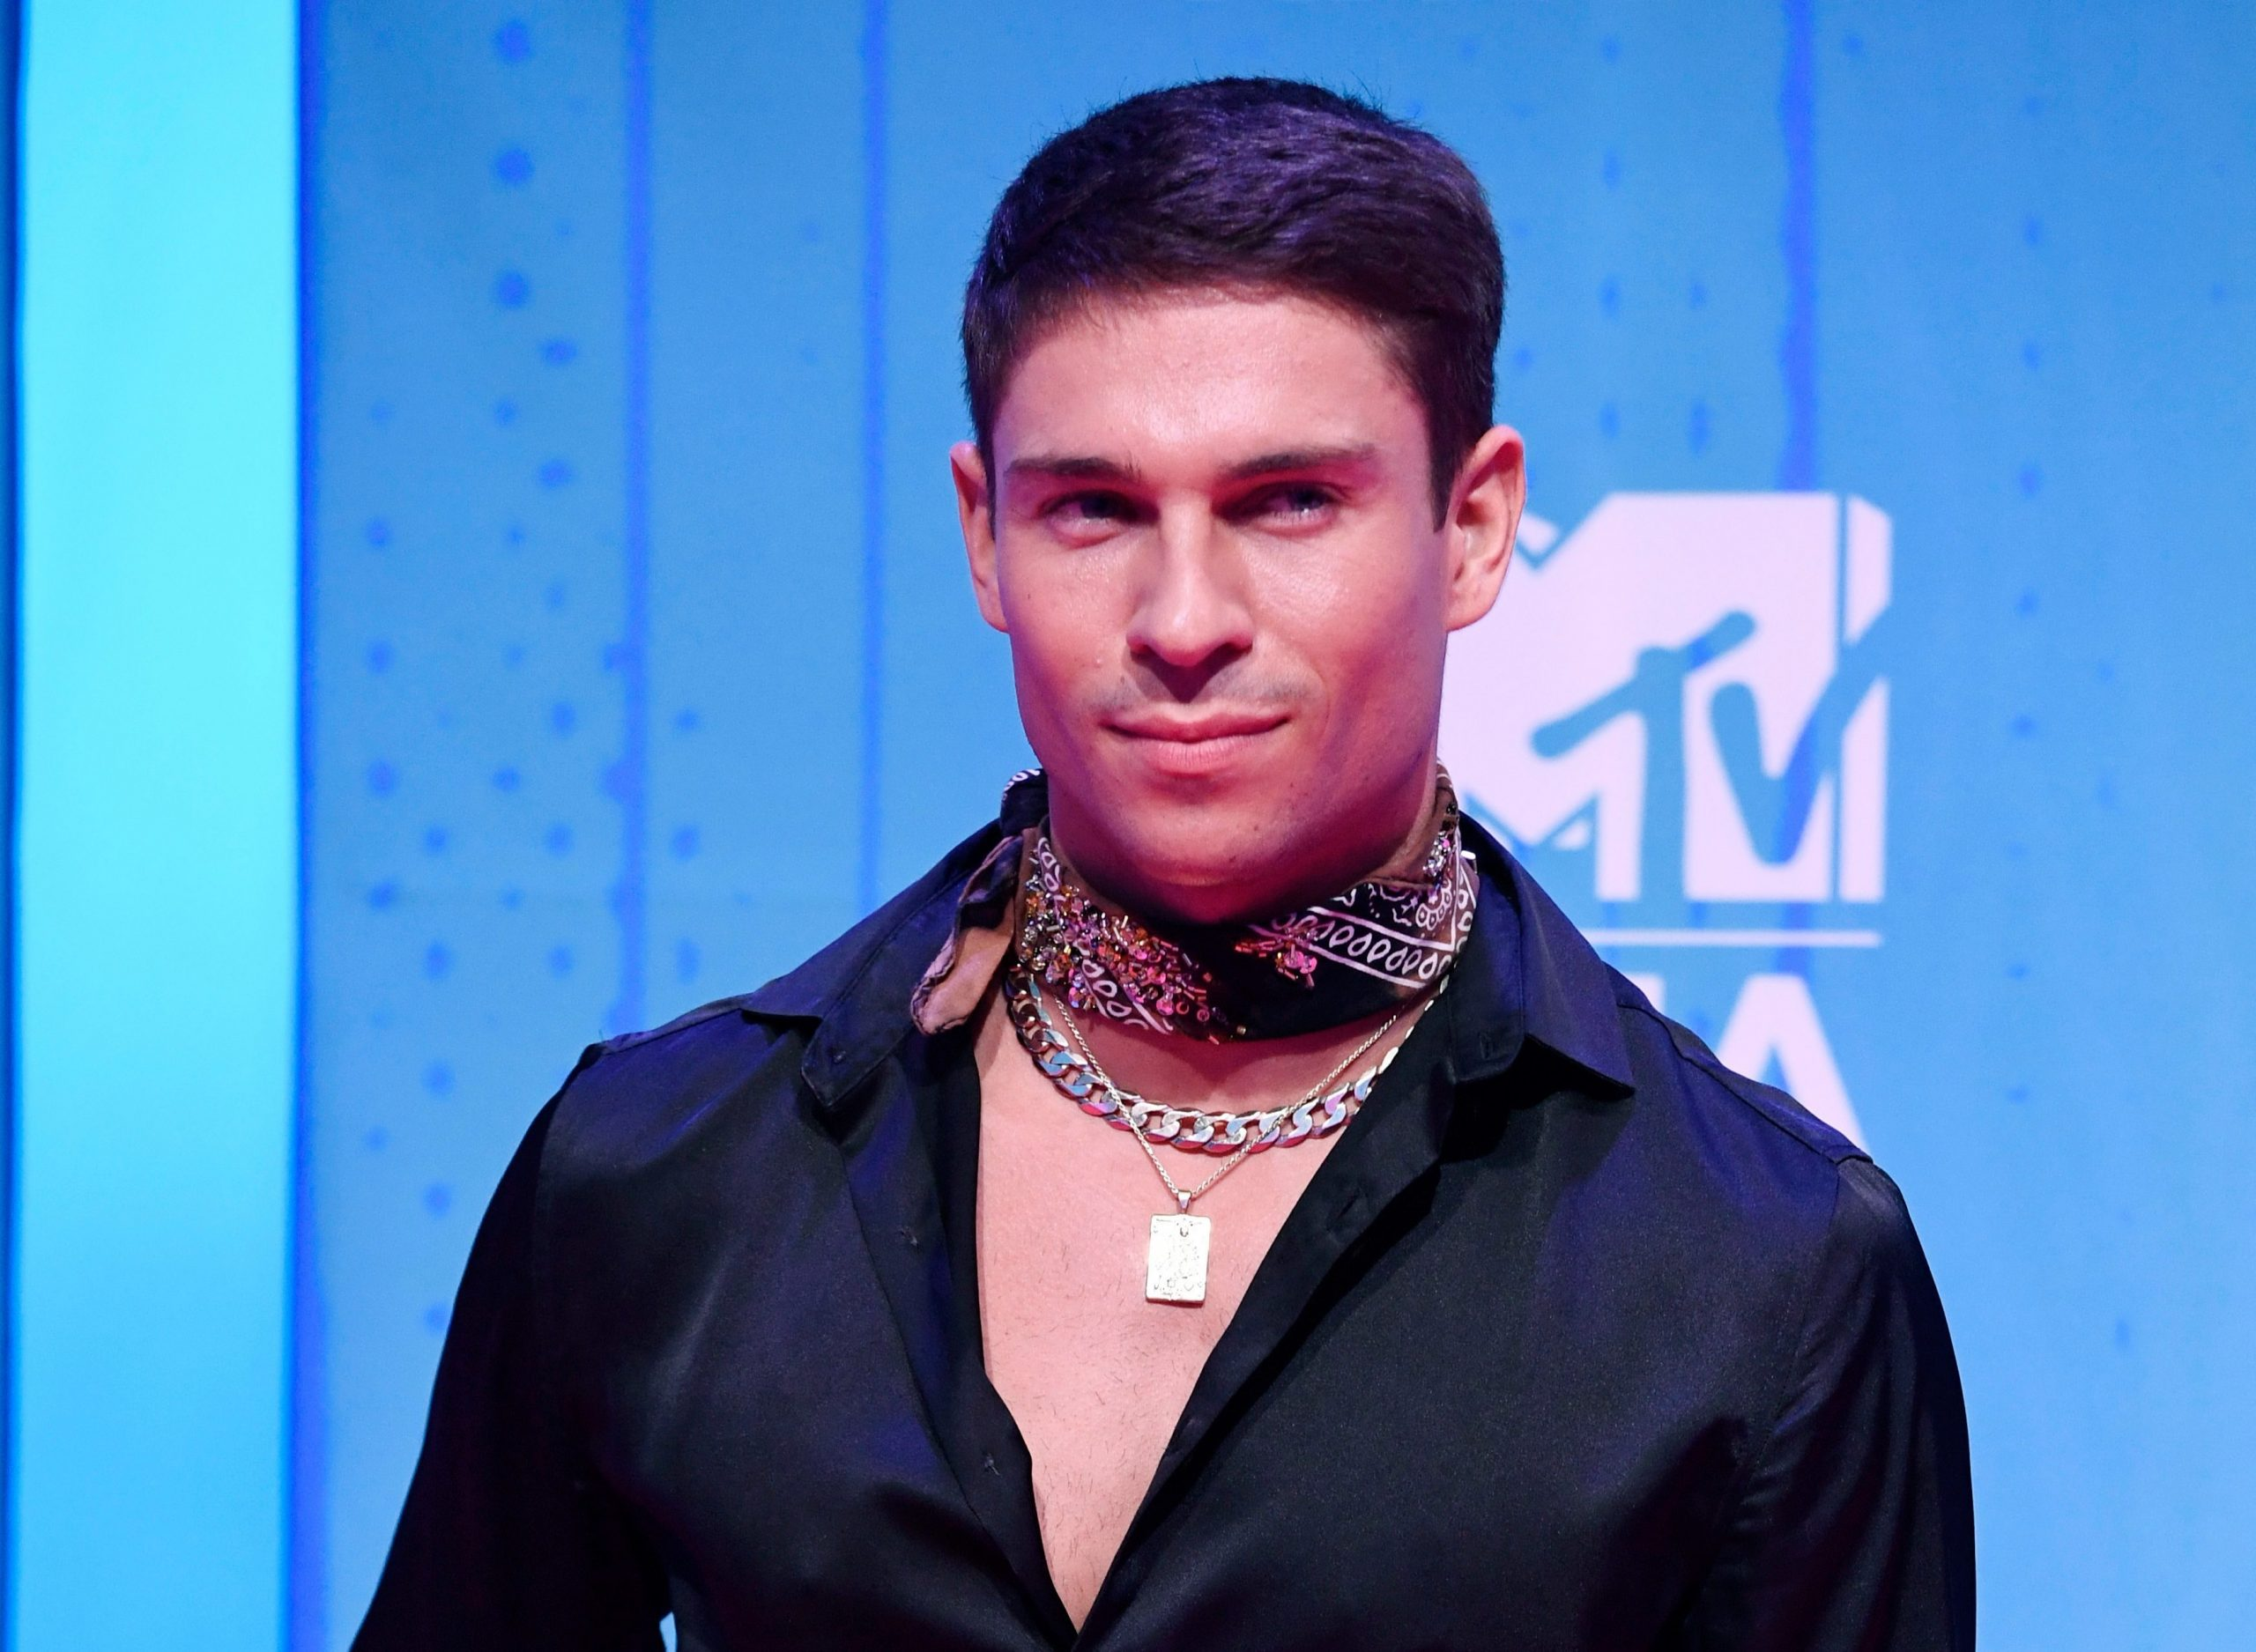 Joey Essex: A Television personality who has appeared in various reality shows and owns a clothing line.